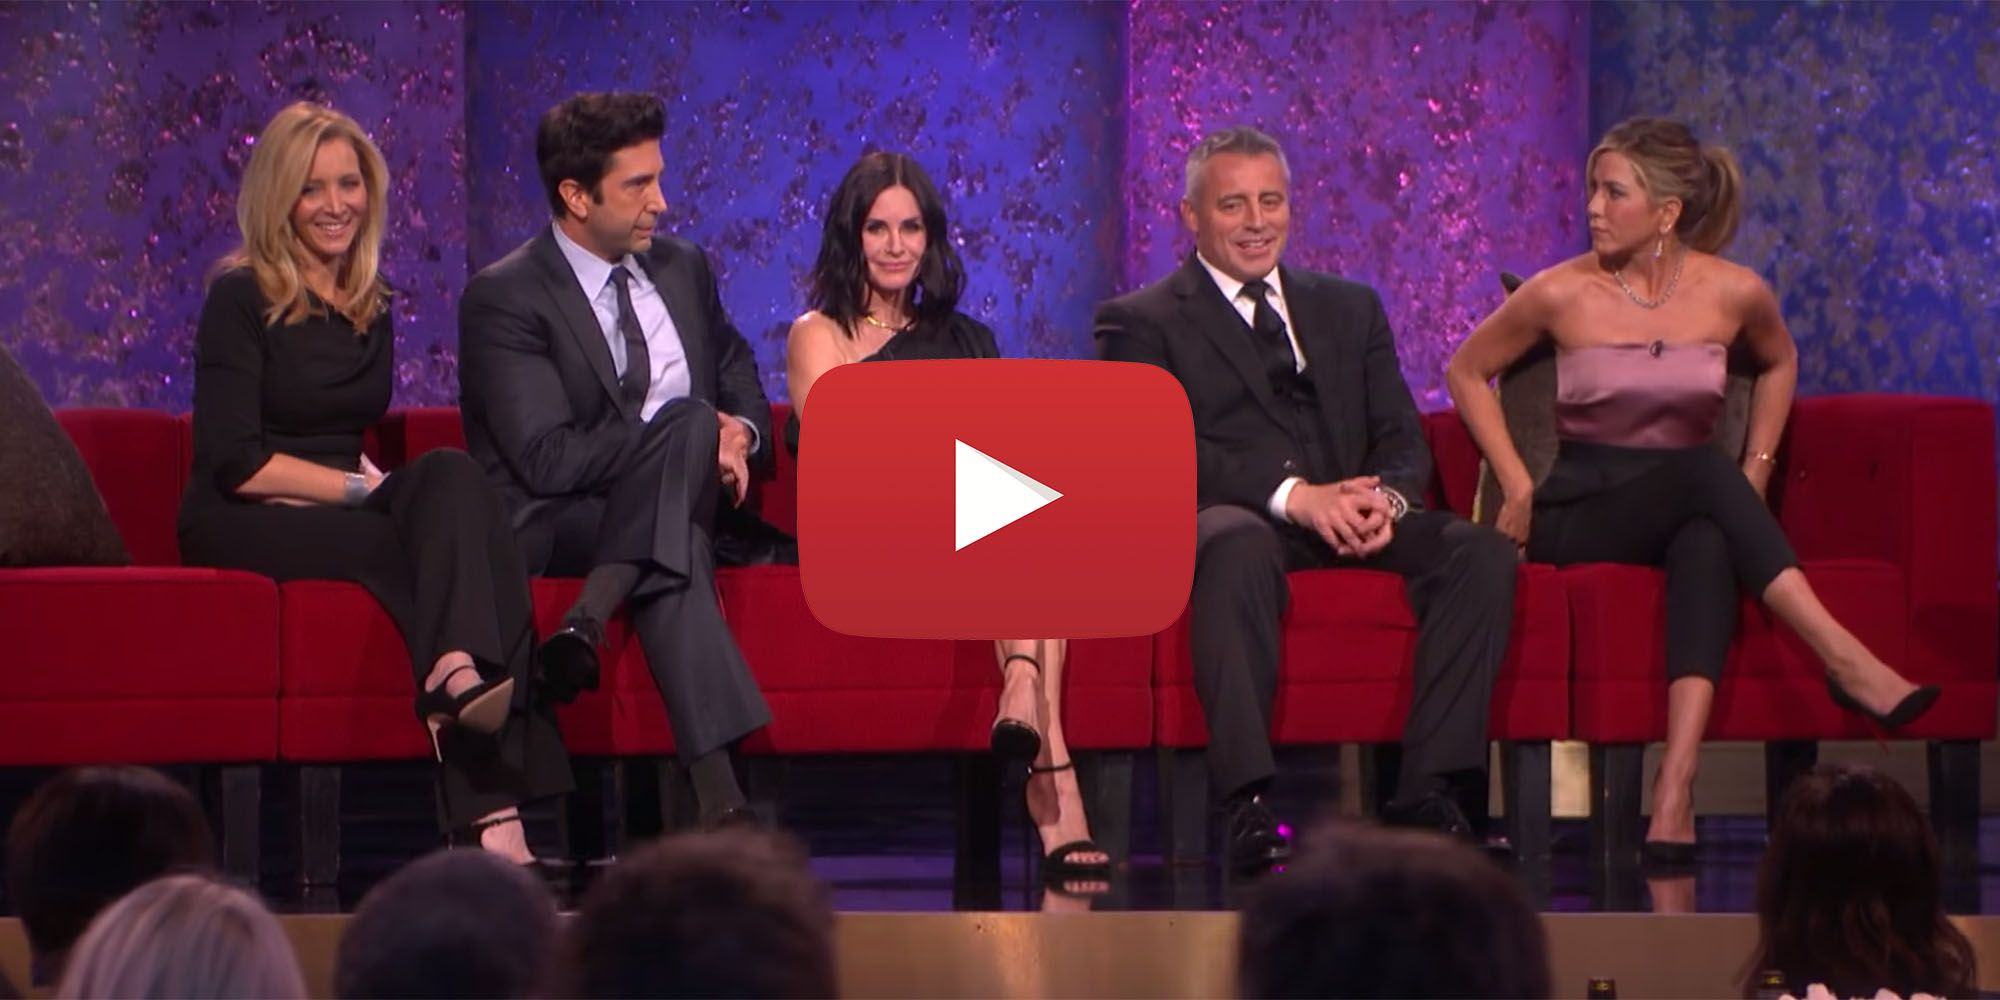 Friends Reunion Special - Watch Preview Clips From NBC Special